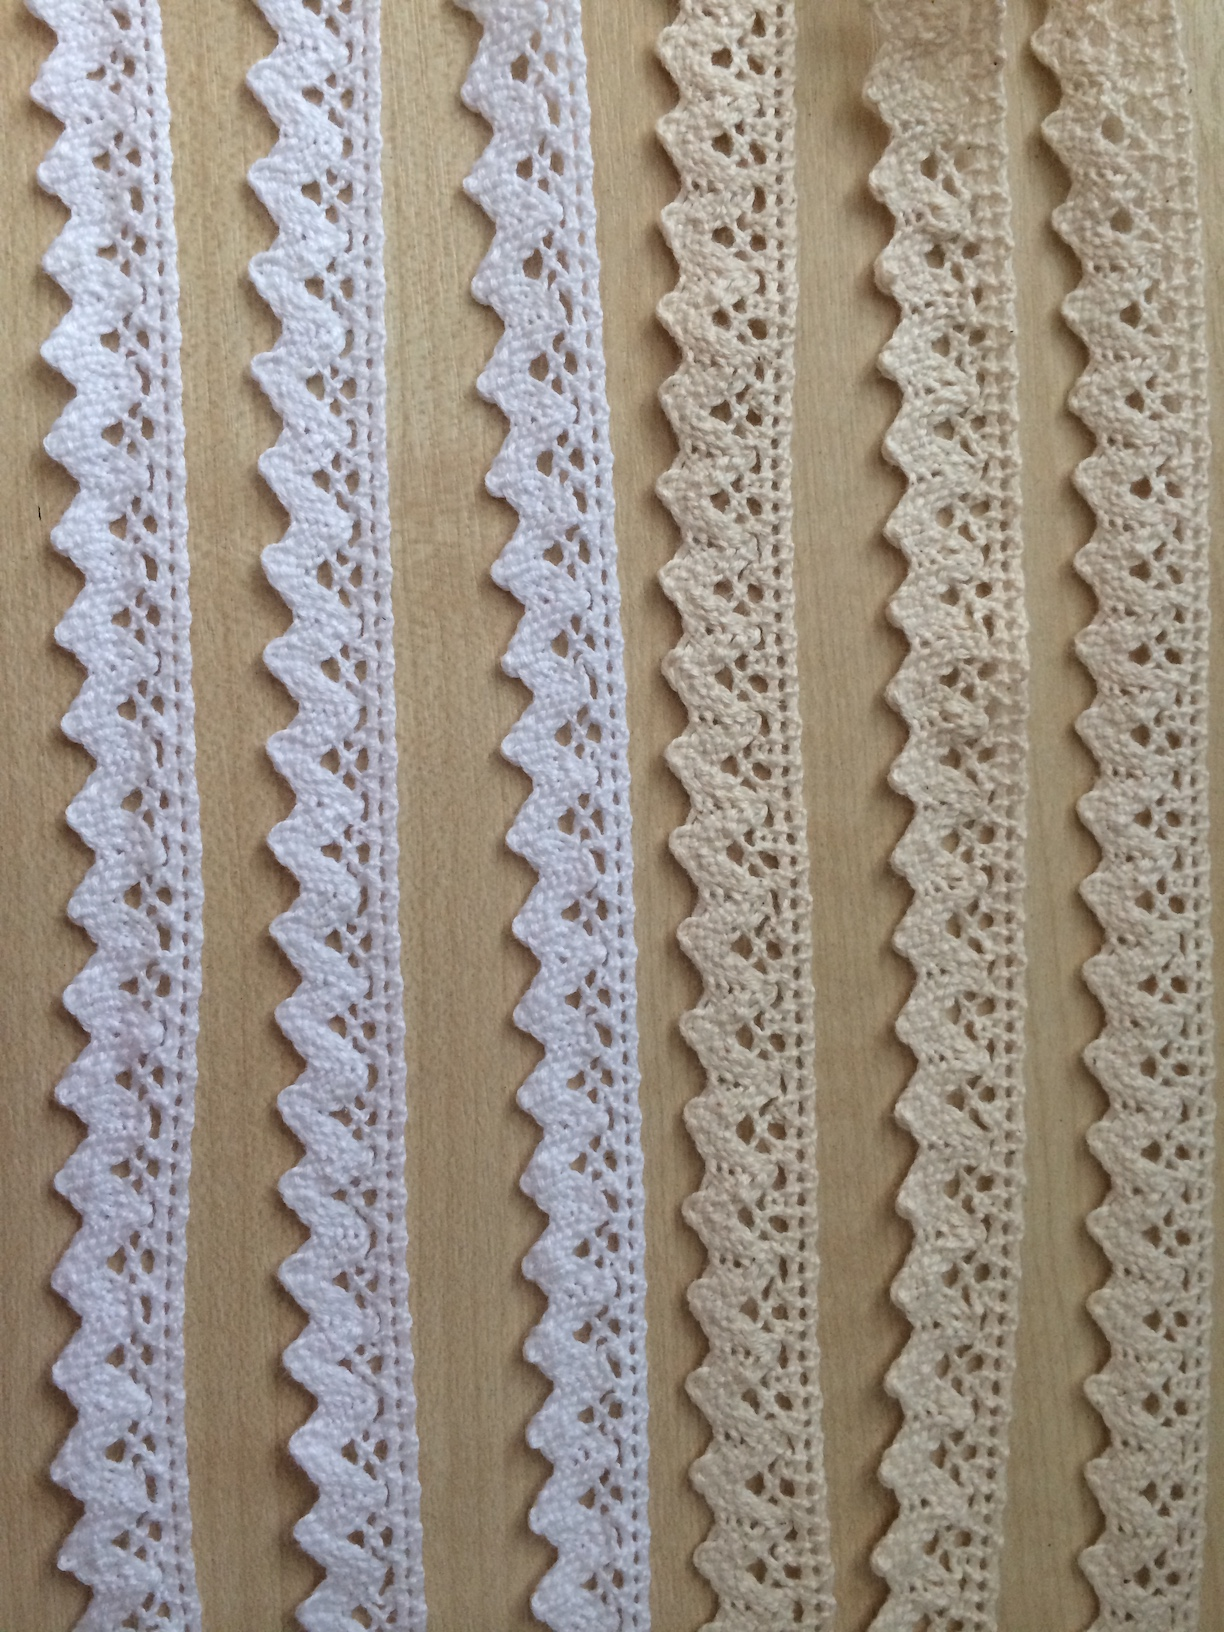 Cotton lace ribbon 15mm wide